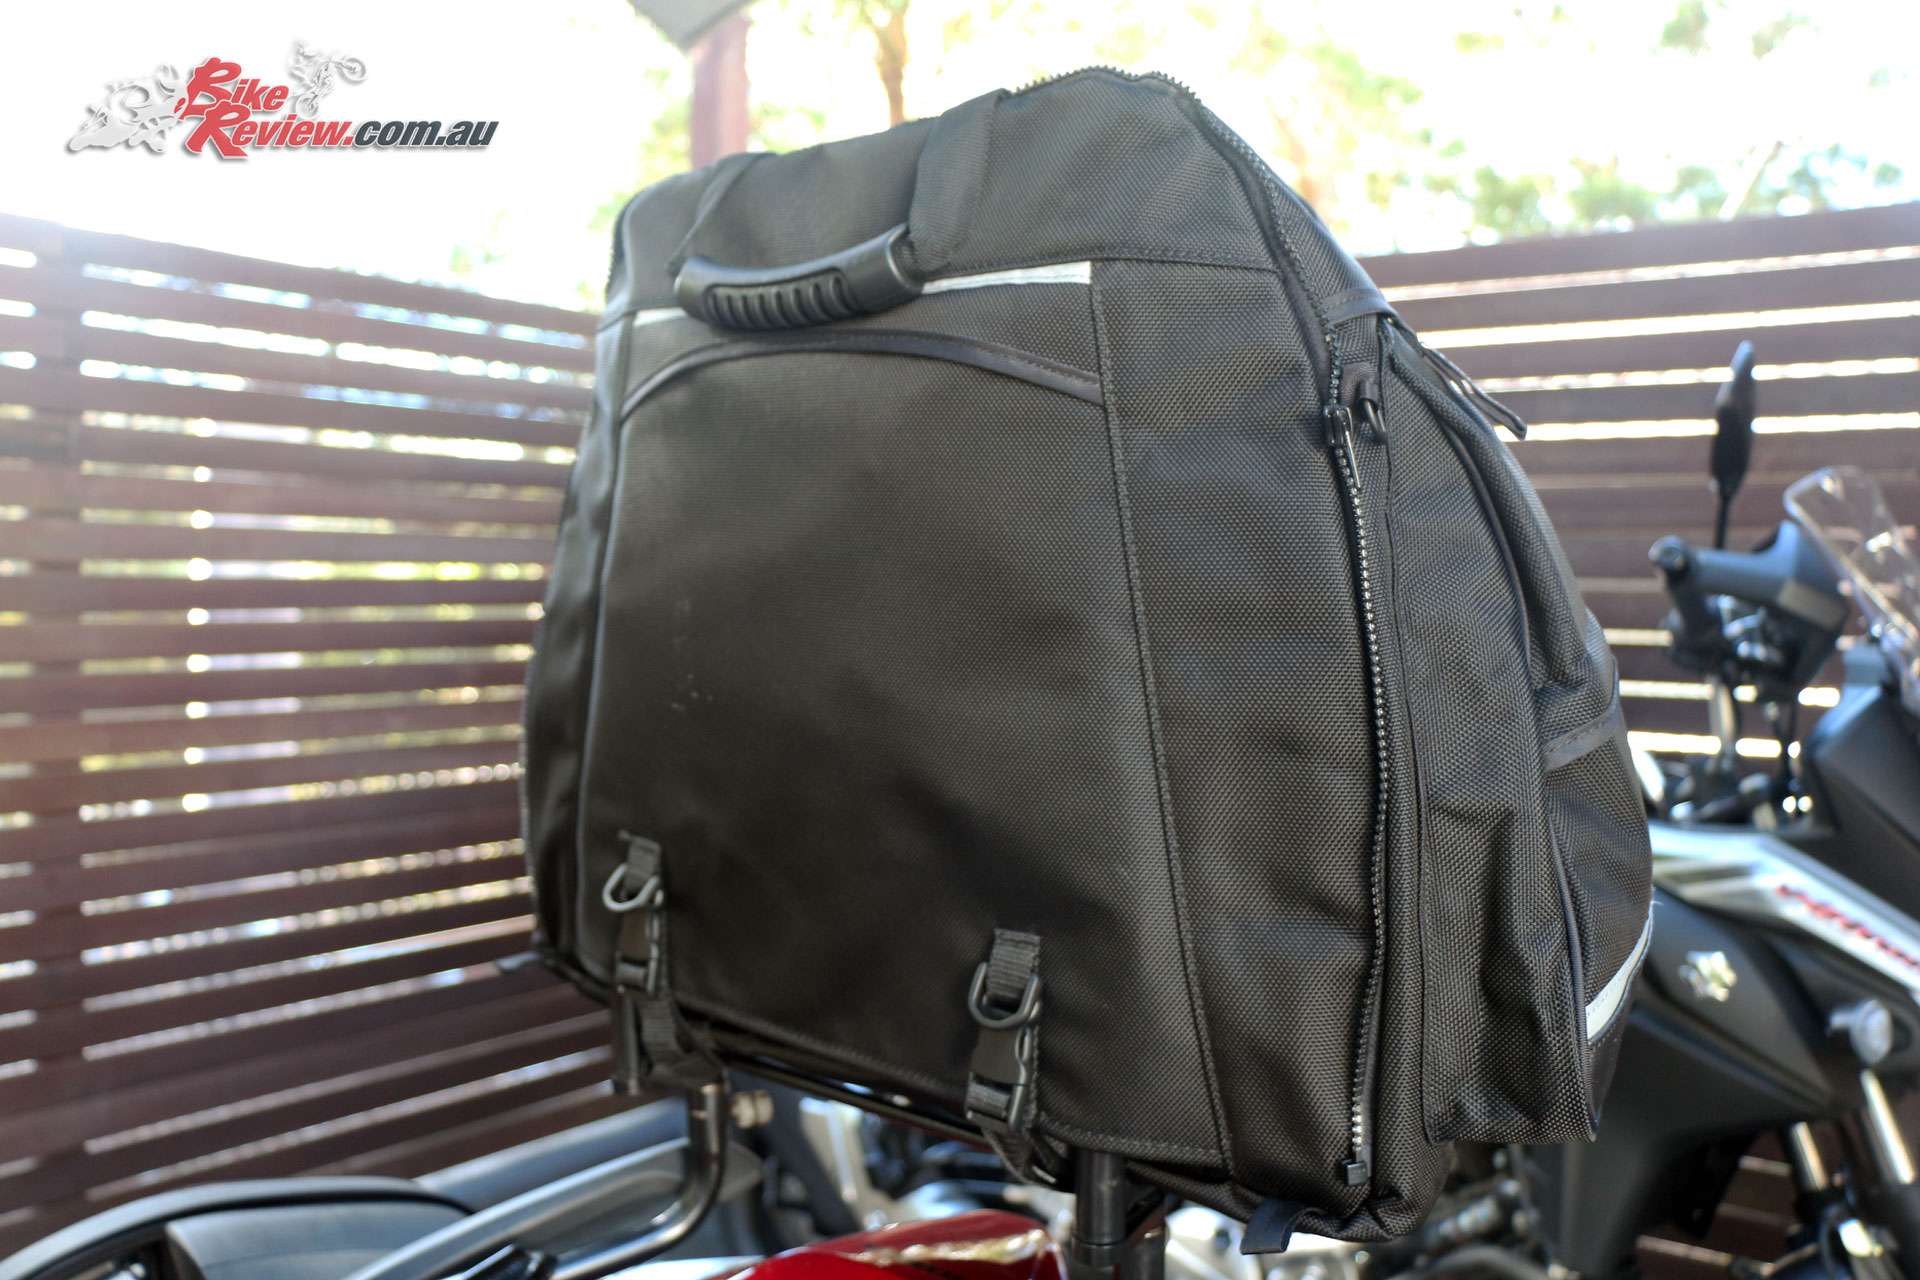 The bag slips into place and gets clipped down ensuring it won't go anywhere, the rear zip visible is for zipping a second bag into place for extra capacity